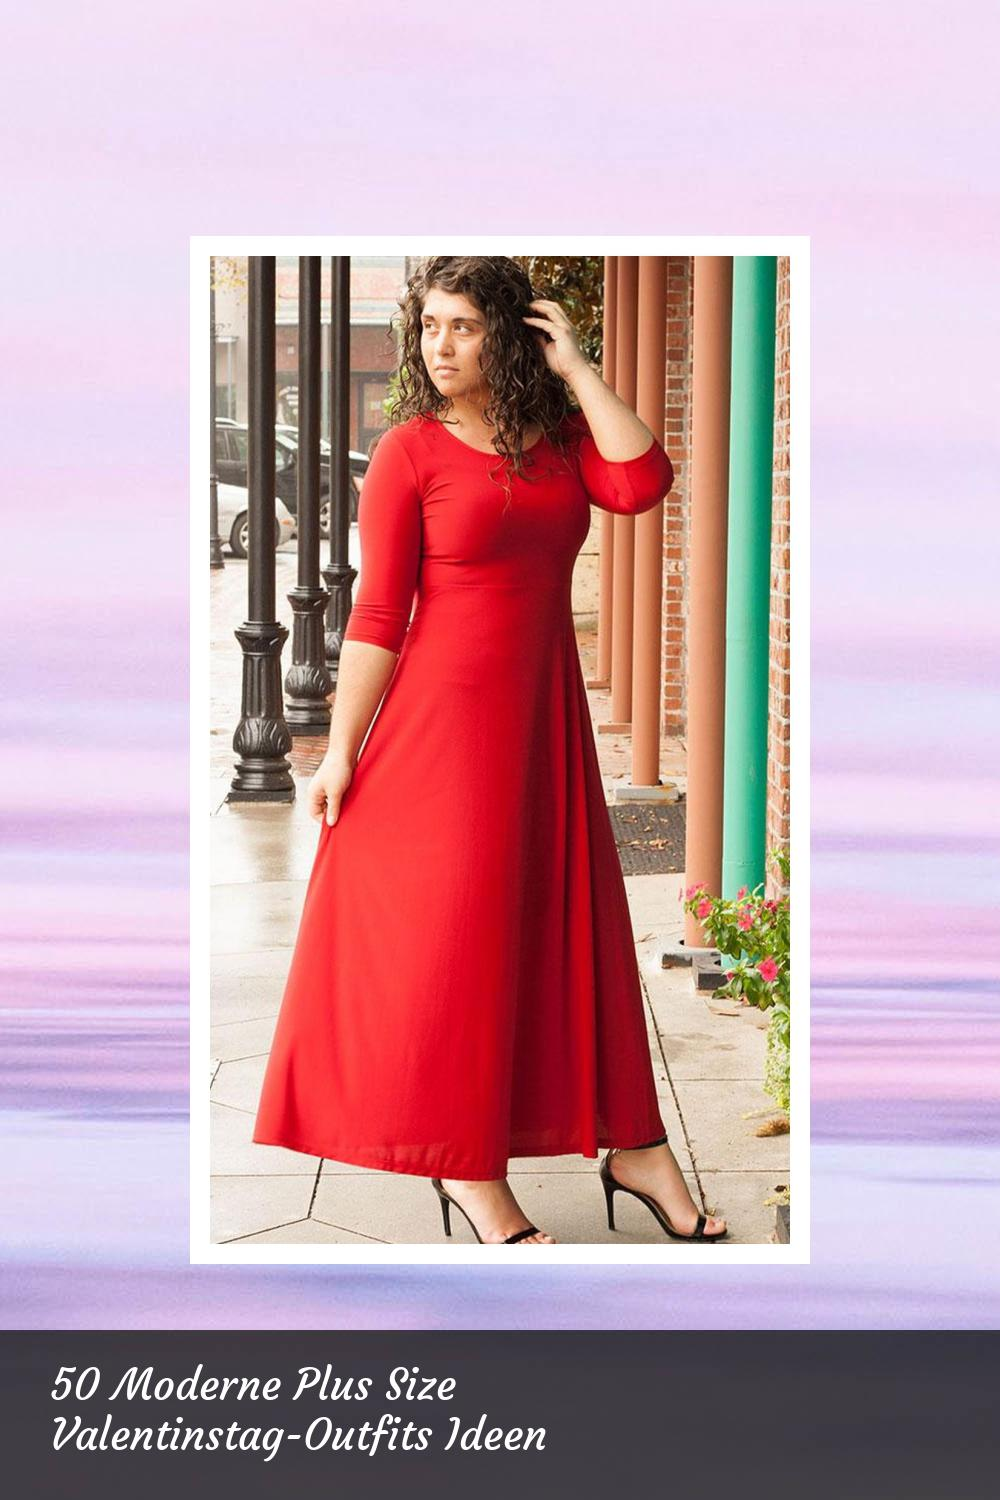 50 Moderne Plus Size Valentinstag-Outfits Ideen 39